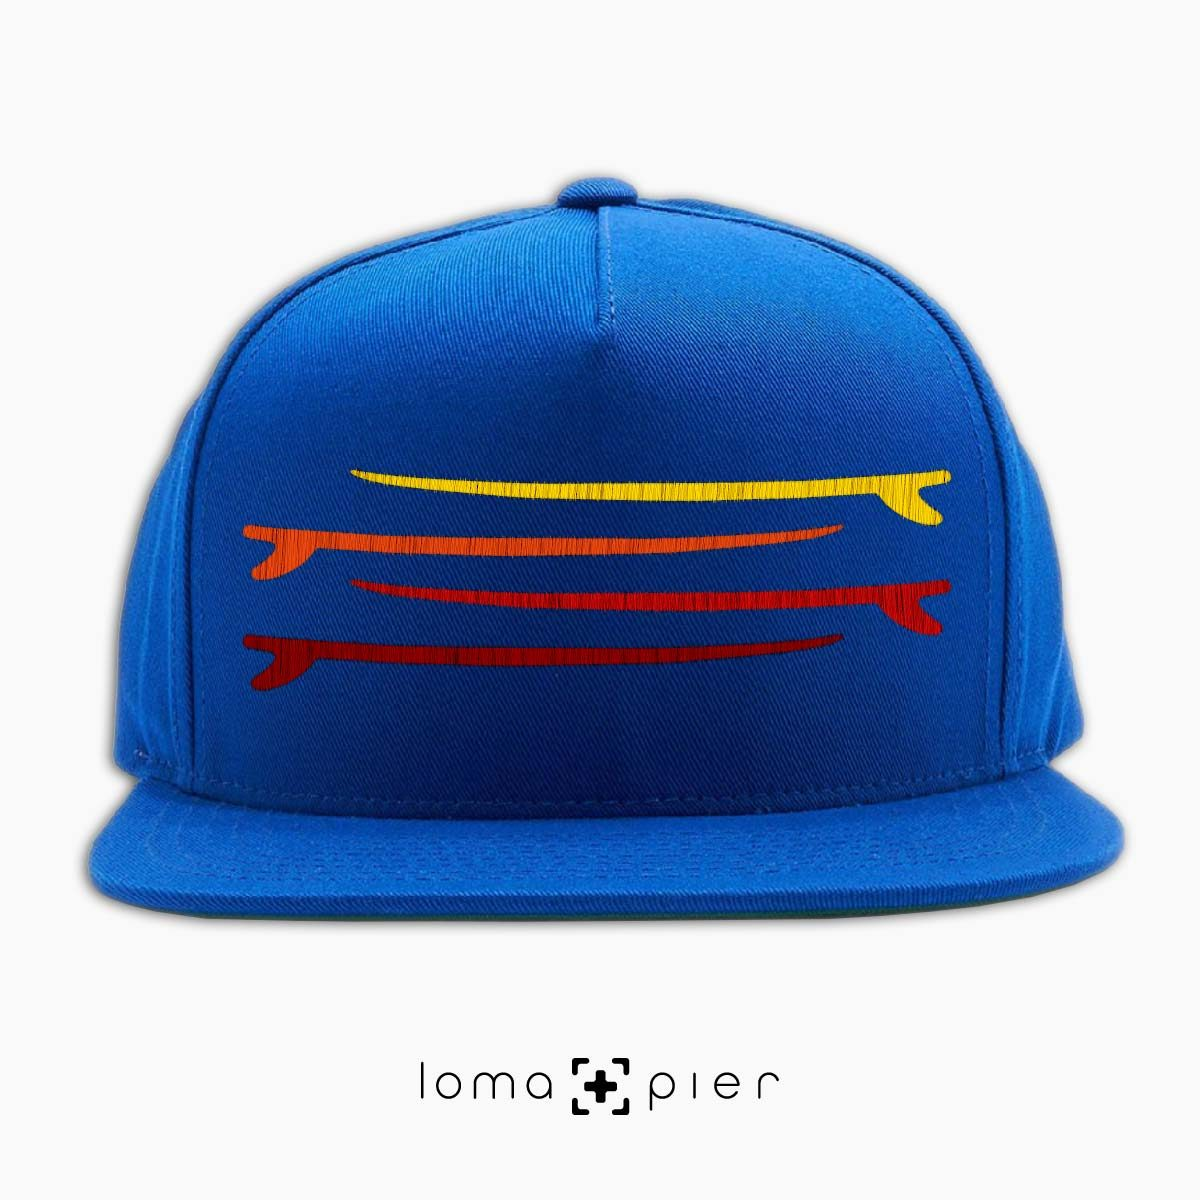 SURF STACK manhattan beach snapback hat in blue by loma+pier hat store